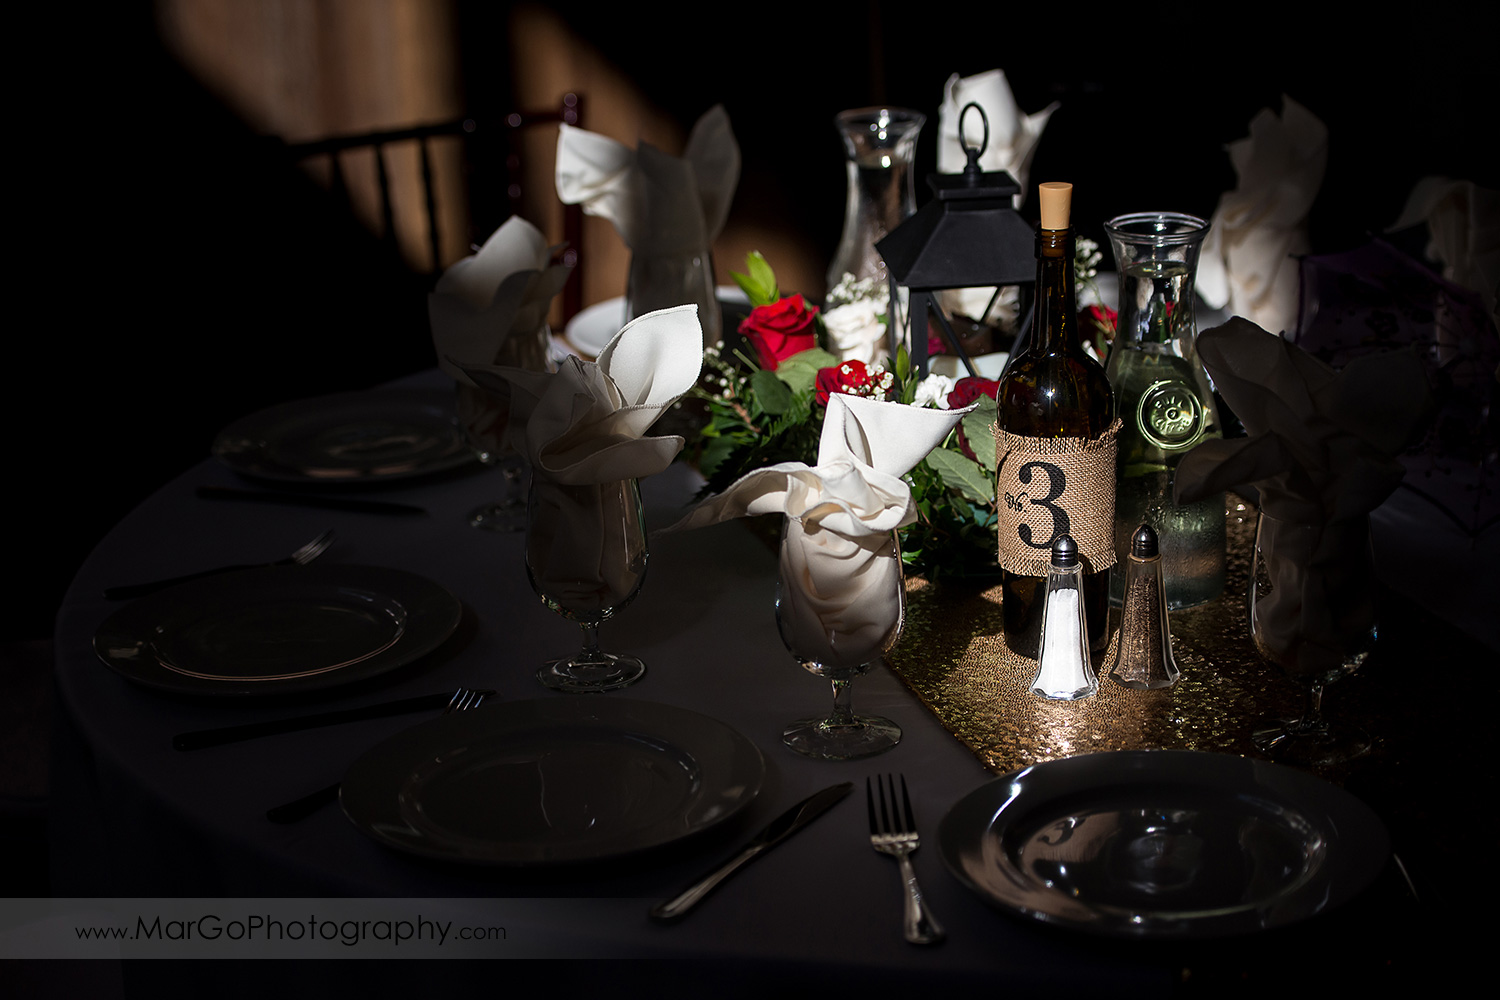 wedding table decor at Elliston Vineyards in Sunol